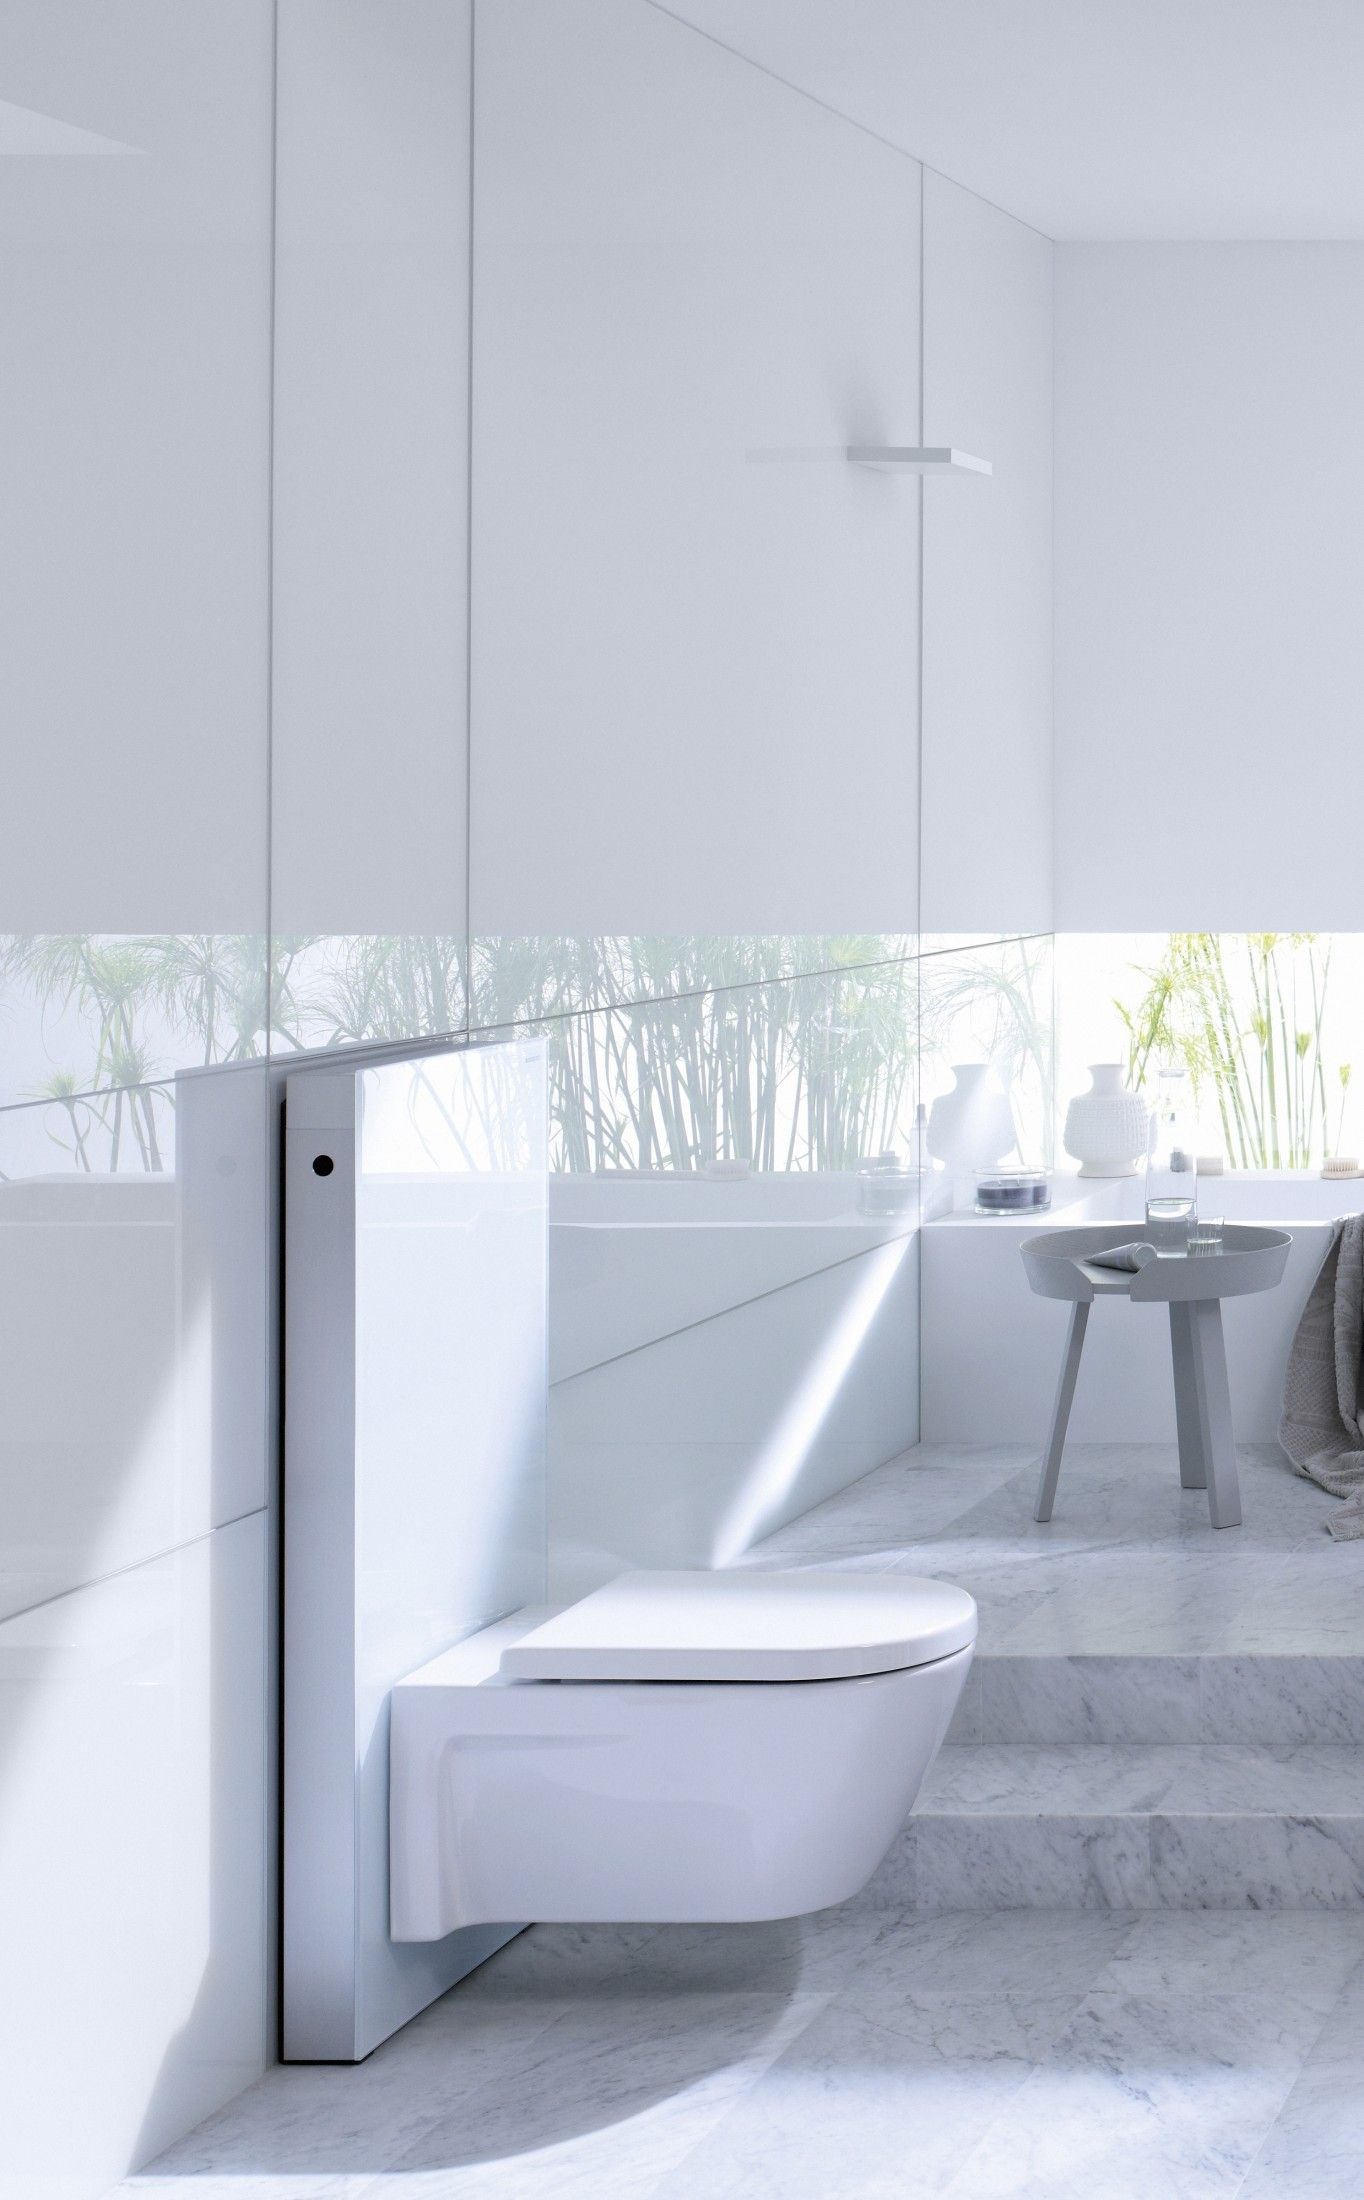 Wc Trennwände Glas Schweiz Natural Light Sleek Bathroom Design With Geberit Much Needed